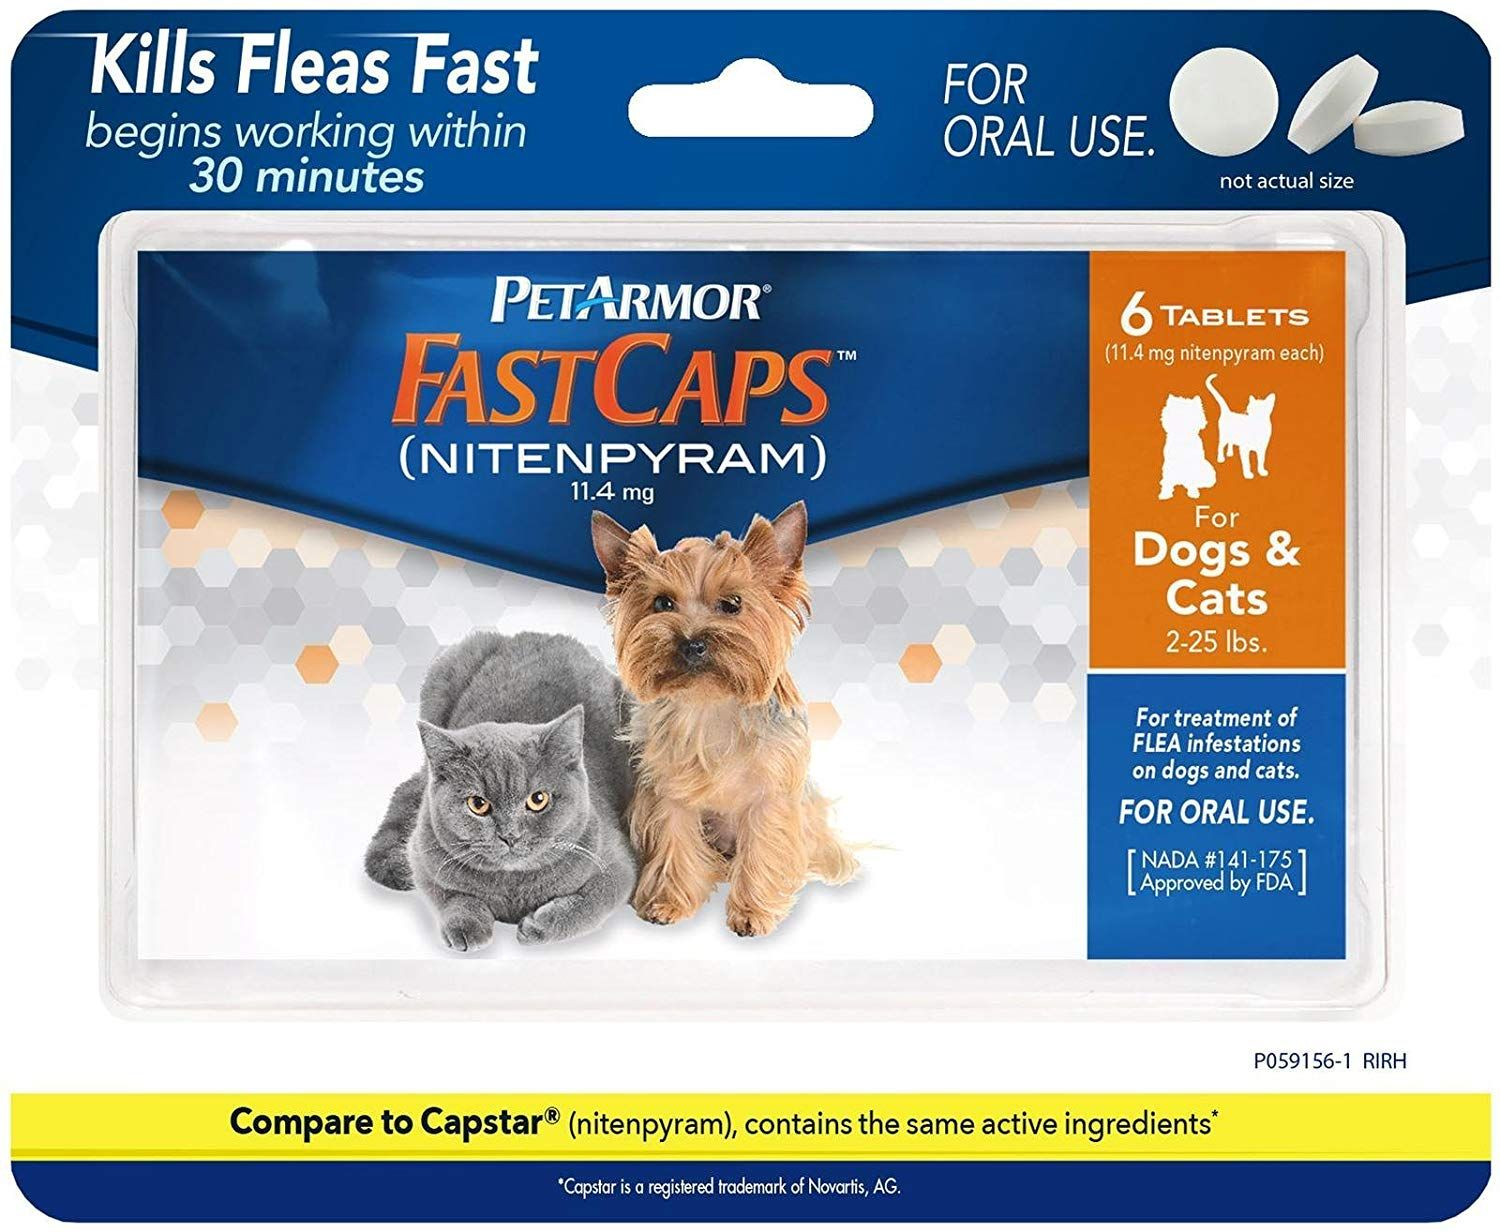 Petarmor Fastcaps For Dogs And Cats Dog Set 6 Ct We Appreciate You For Visiting Our Photograph This Is An Cat Fleas Dog Flea Treatment Flea Treatment